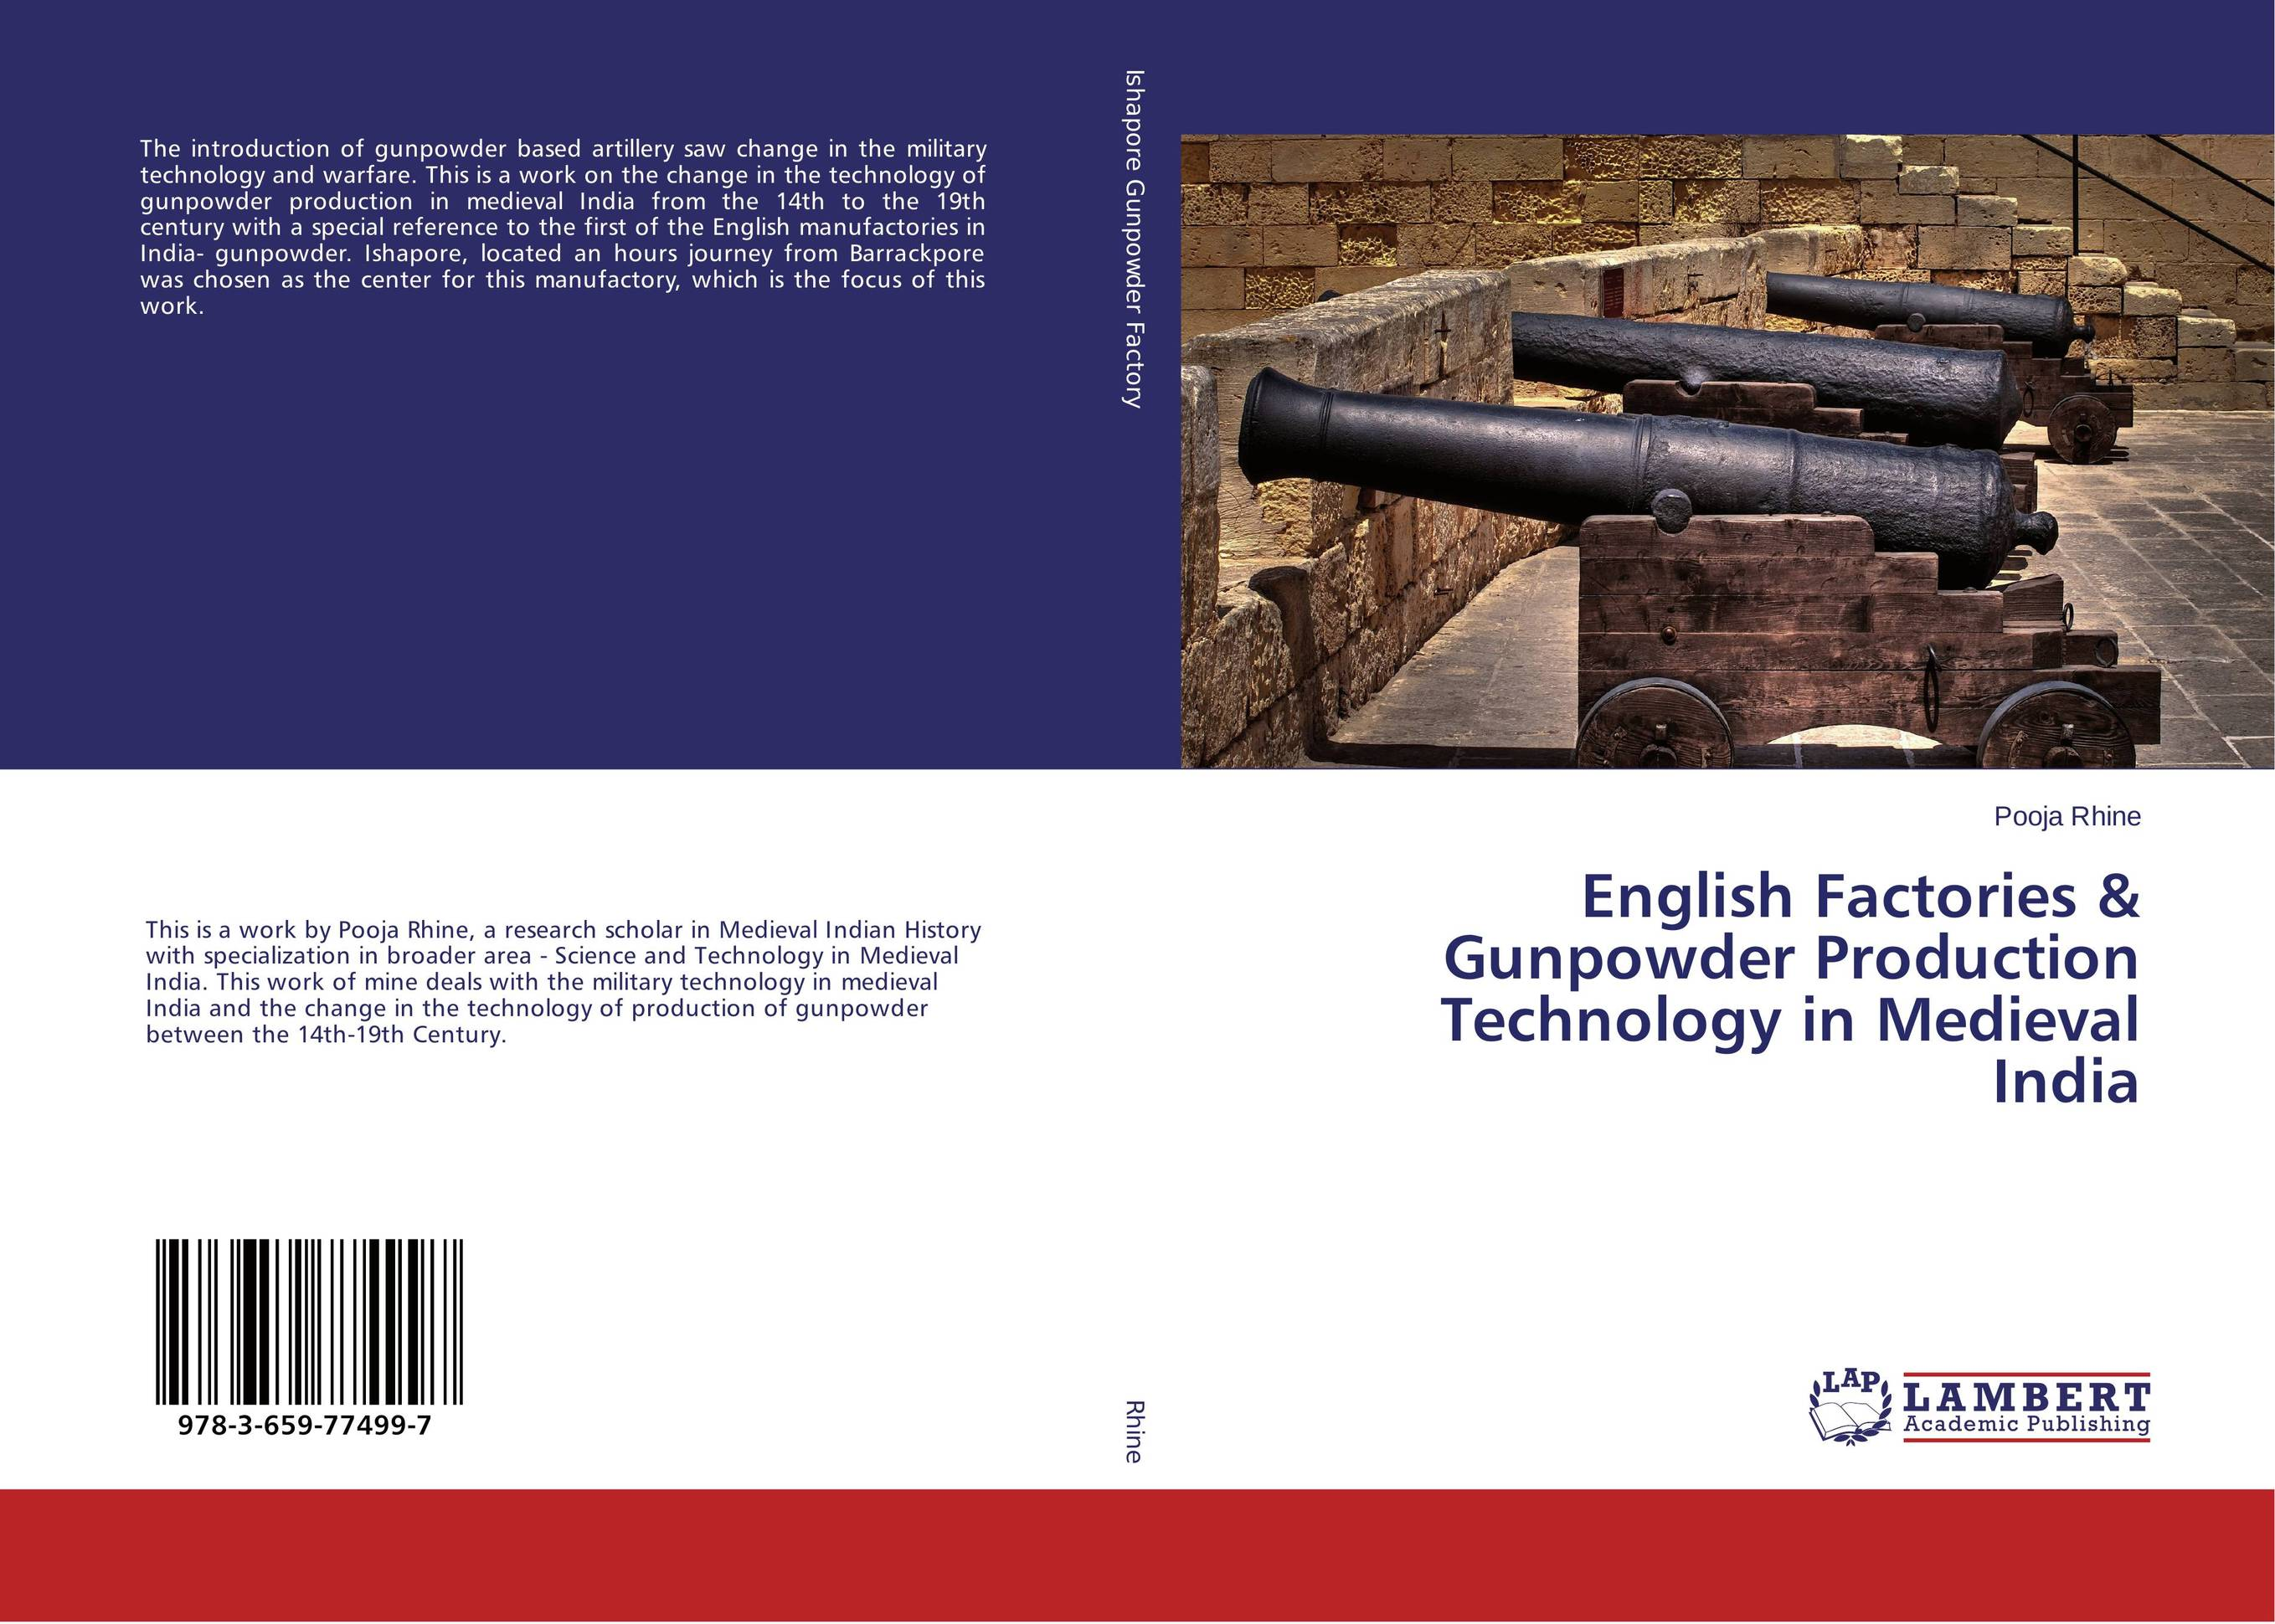 English Factories & Gunpowder Production Technology in Medieval India effect of nutrient management on soil properties and onion production